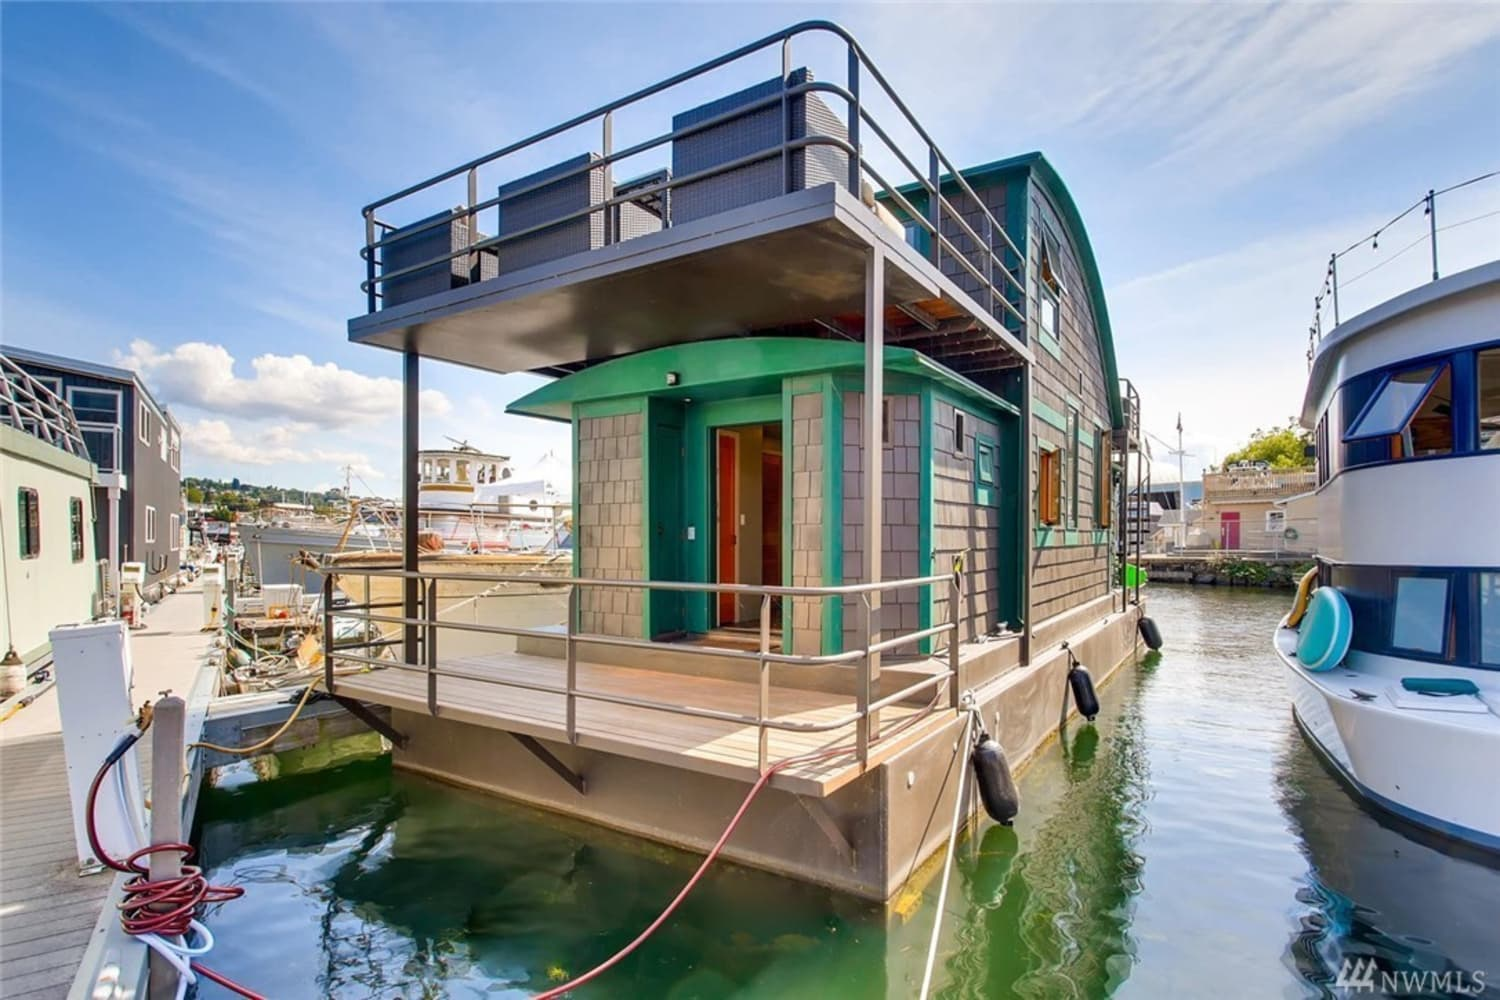 Look Inside: This Houseboat in Seattle Is Just Delightful—and Surprisingly Spacious